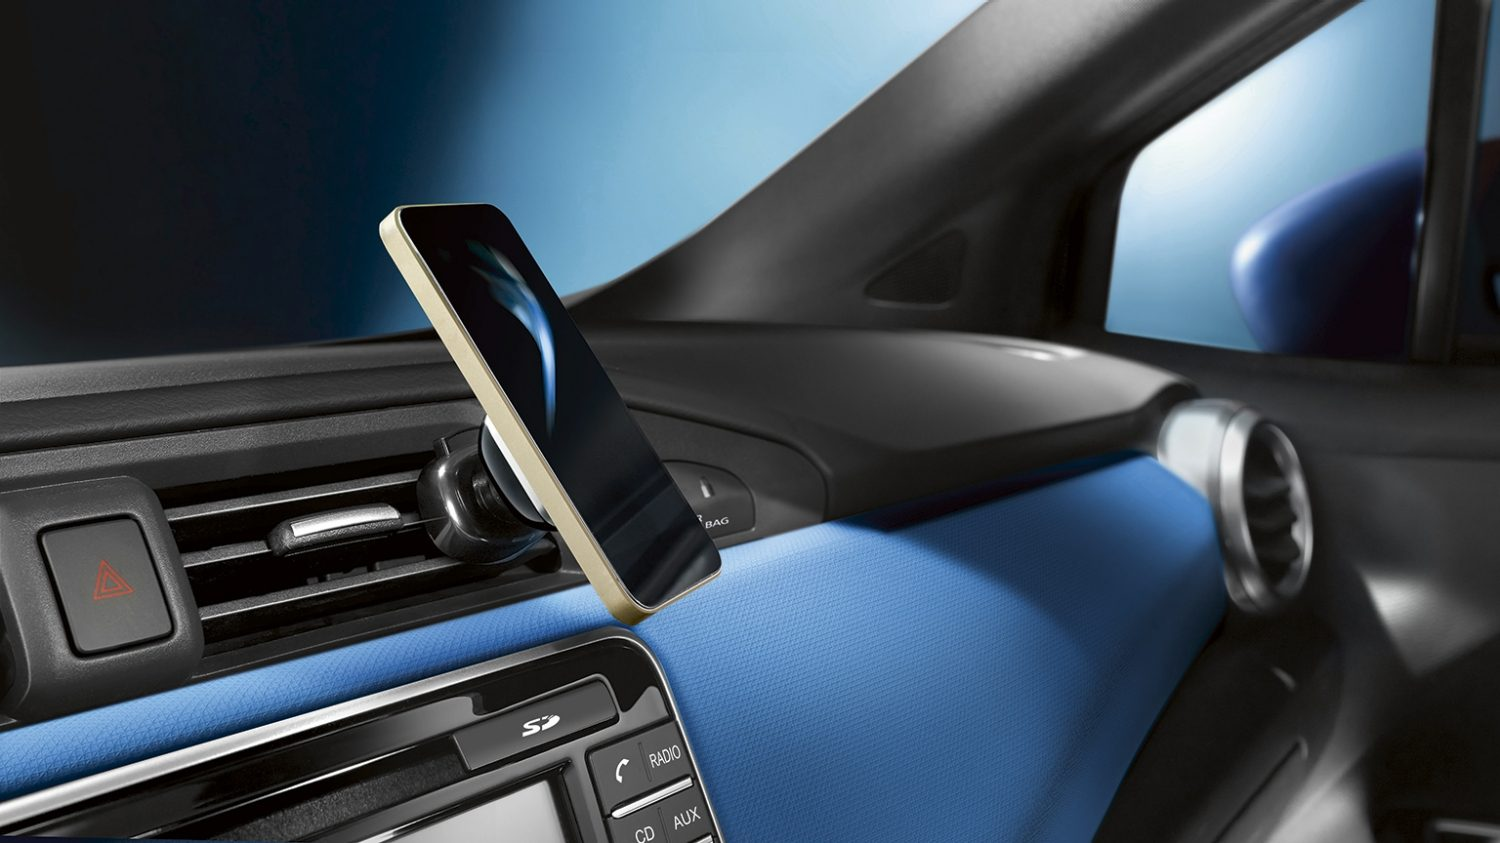 Nissan Micra Smartphone Holder Magnetic Mount